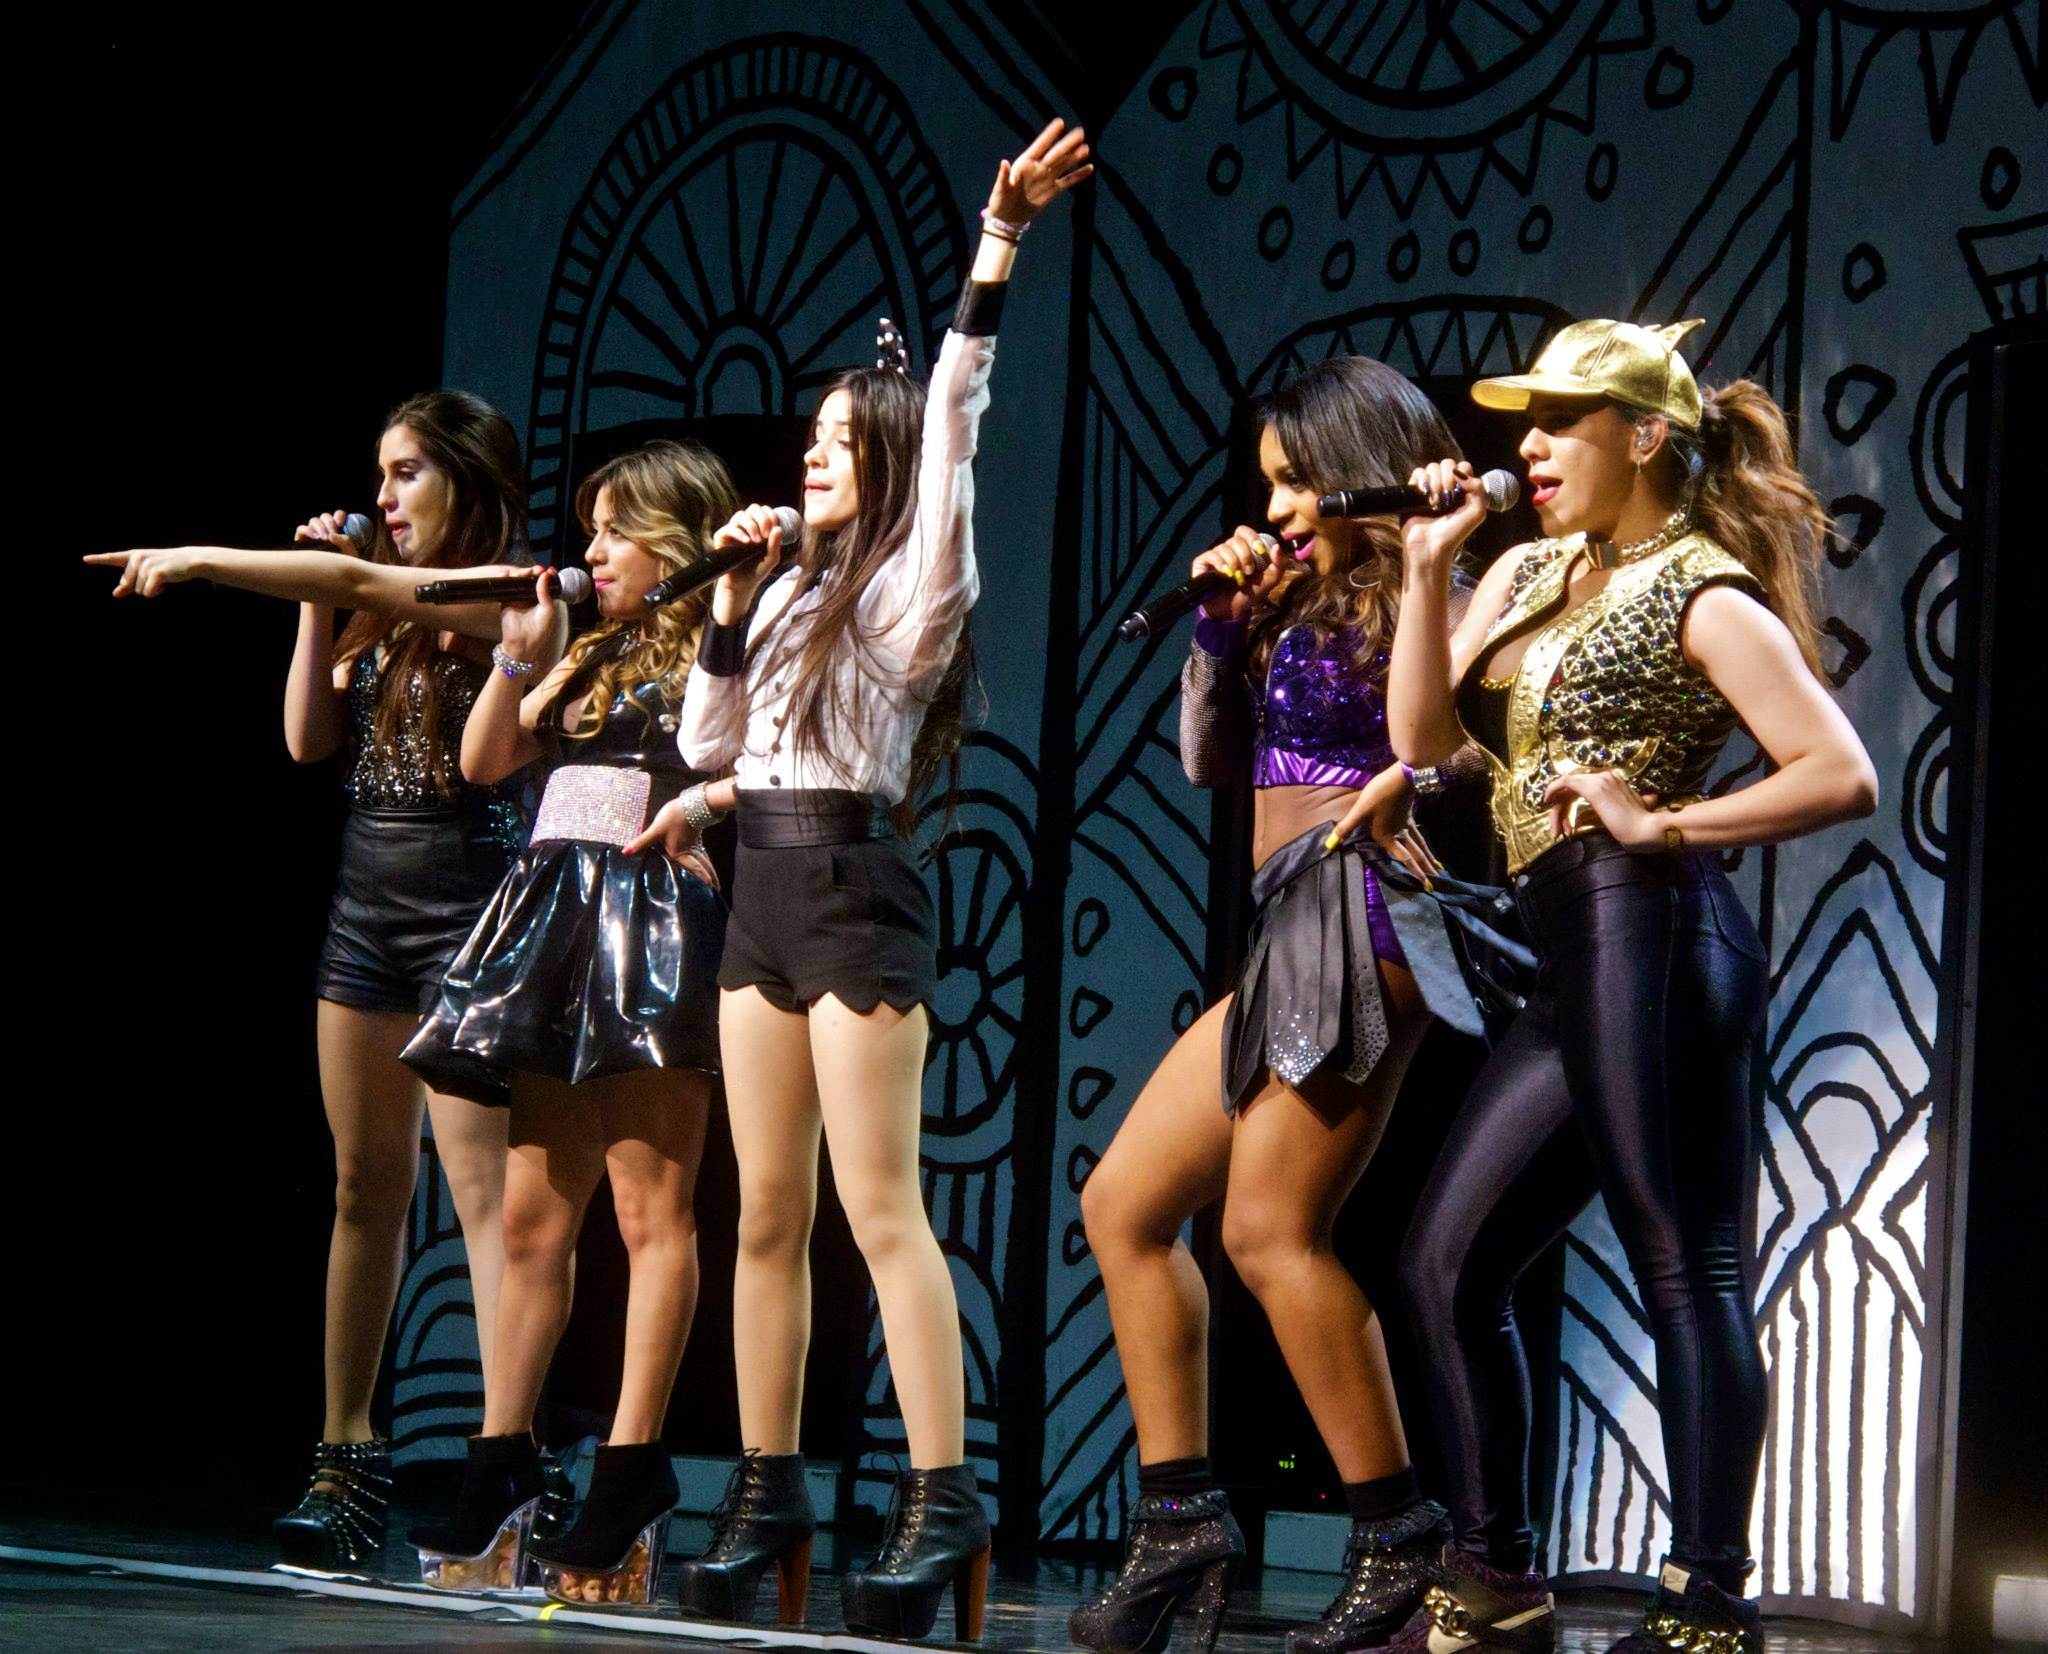 The Downfall of Fifth Harmony